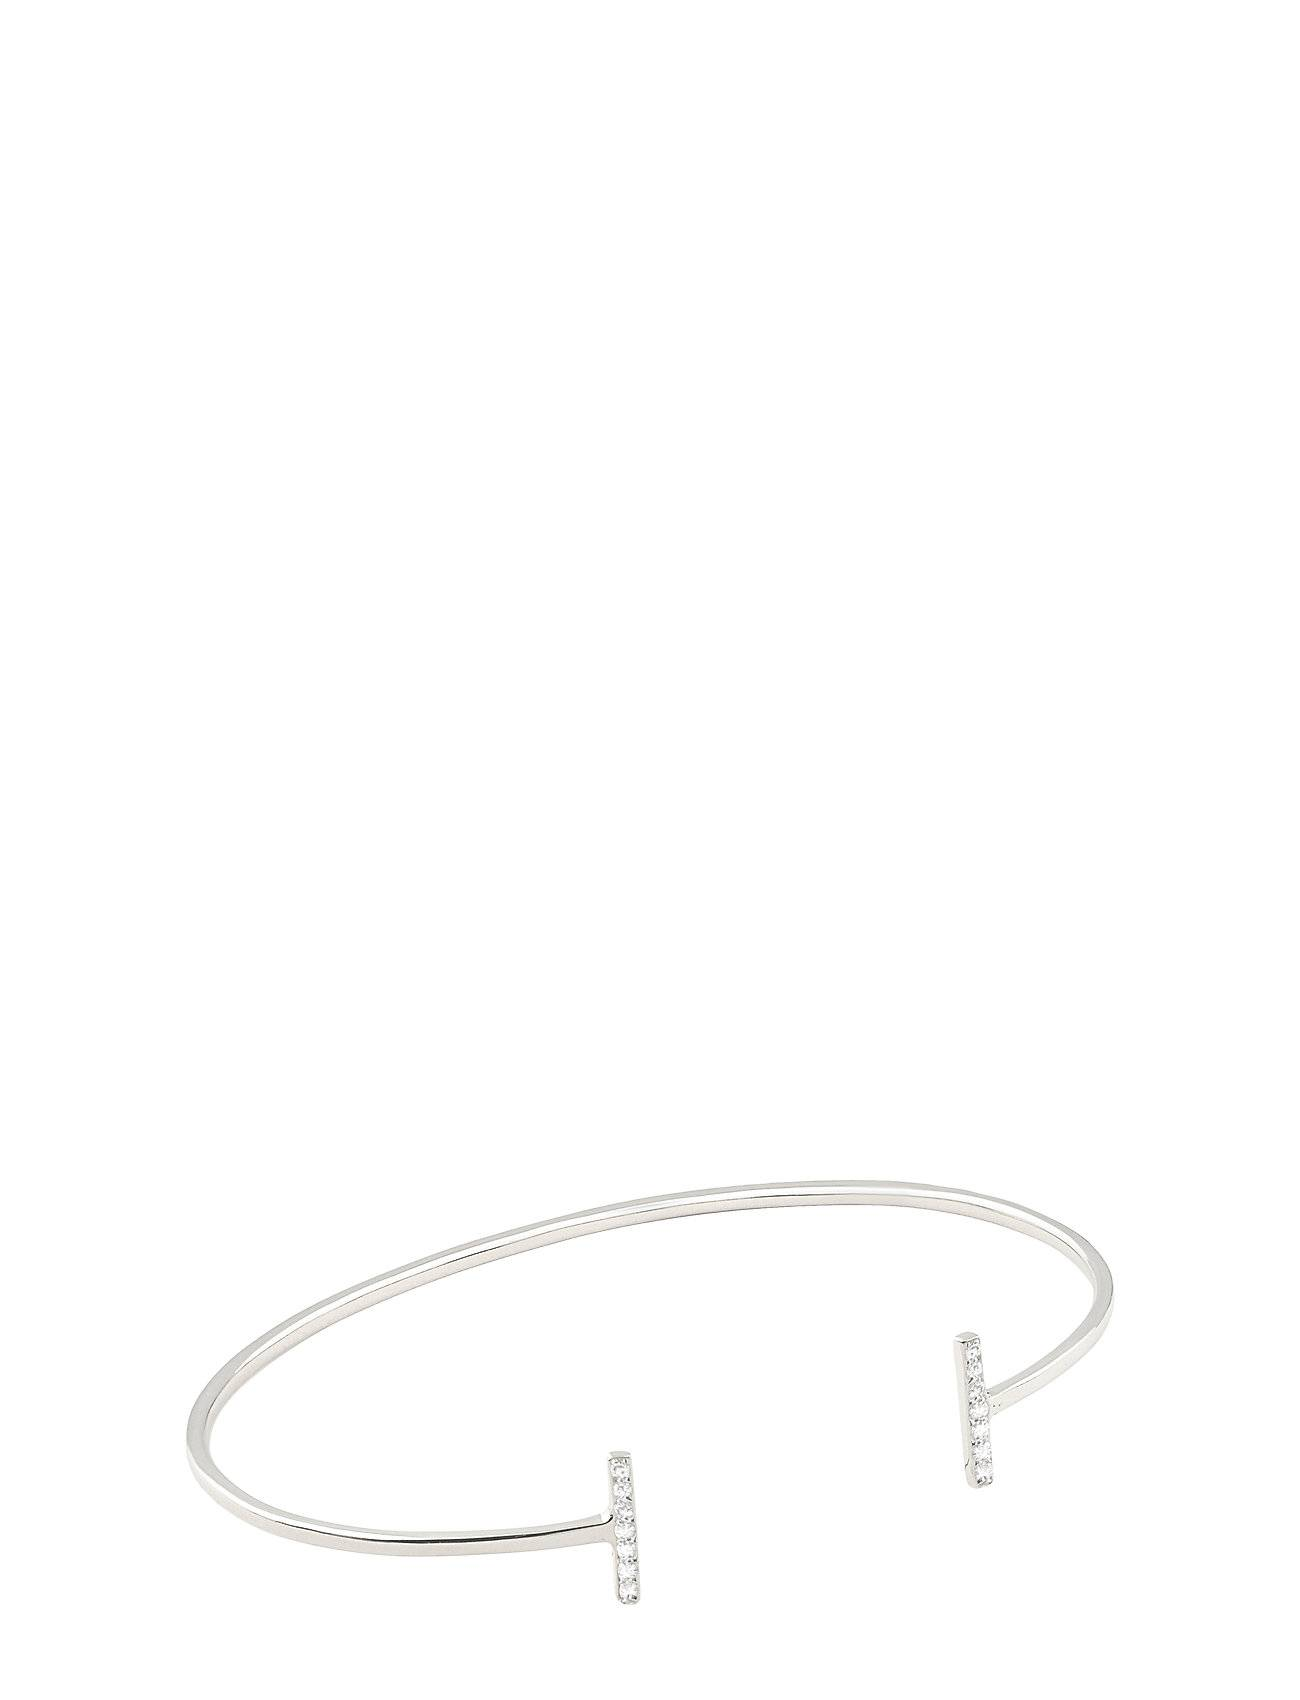 Syster P Strict Sparkling Bangle Bars, Silver